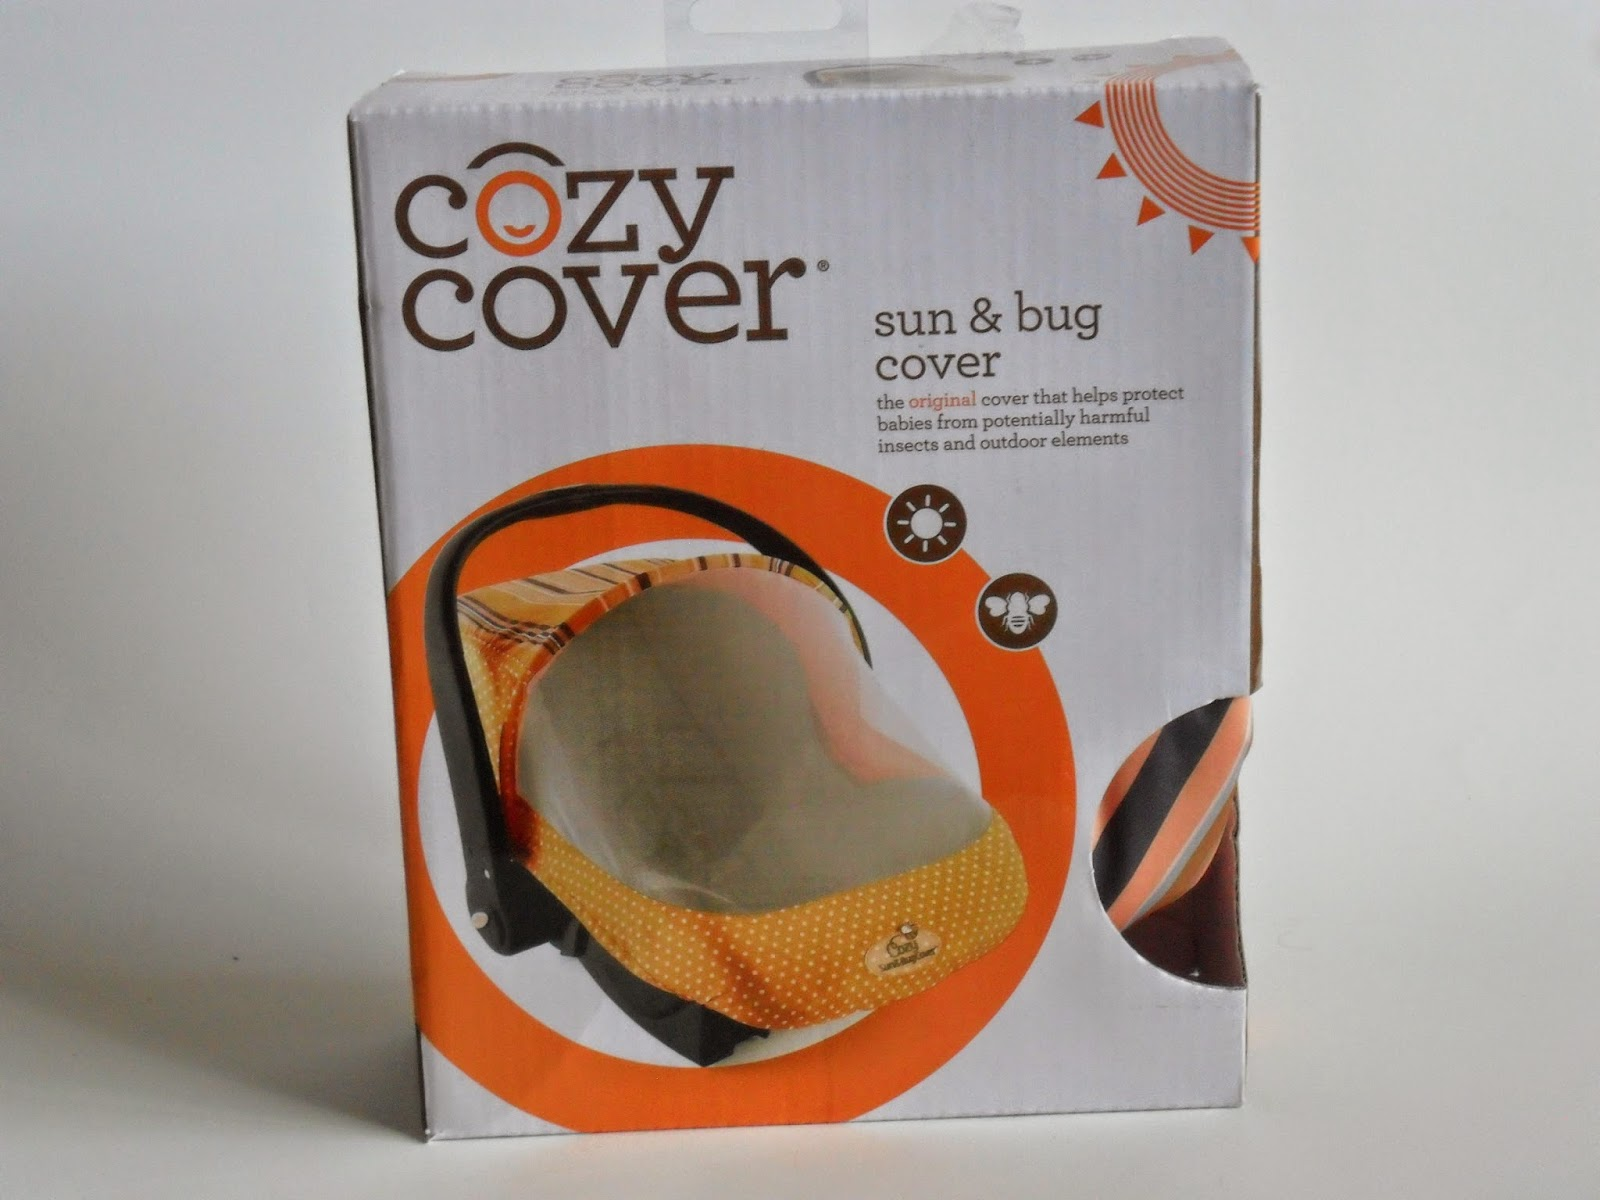 Shades up with Sun & Bug Cover. Cozy Cover Review & Giveaway. (Blu me away or Pink of me Event)